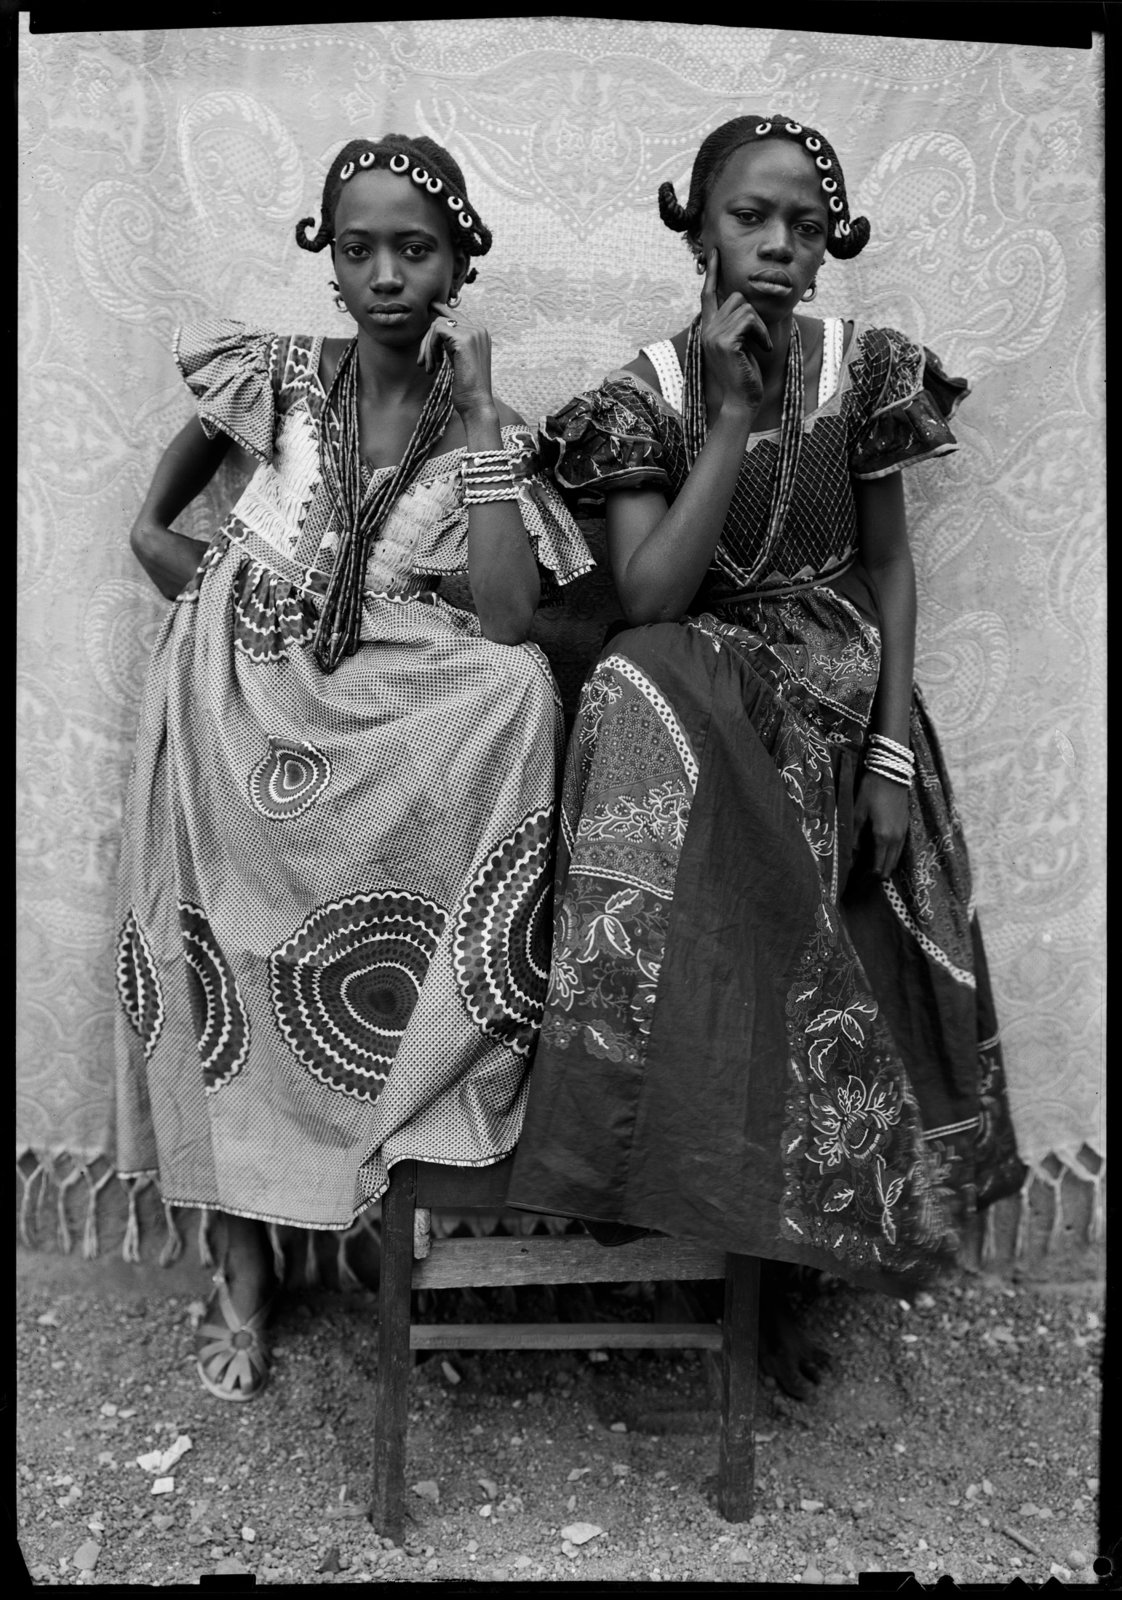 Untitled, 1949/51 © Seydou Keïta / SKPEAC / courtesy CAAC – The Pigozzi Collection, Geneva